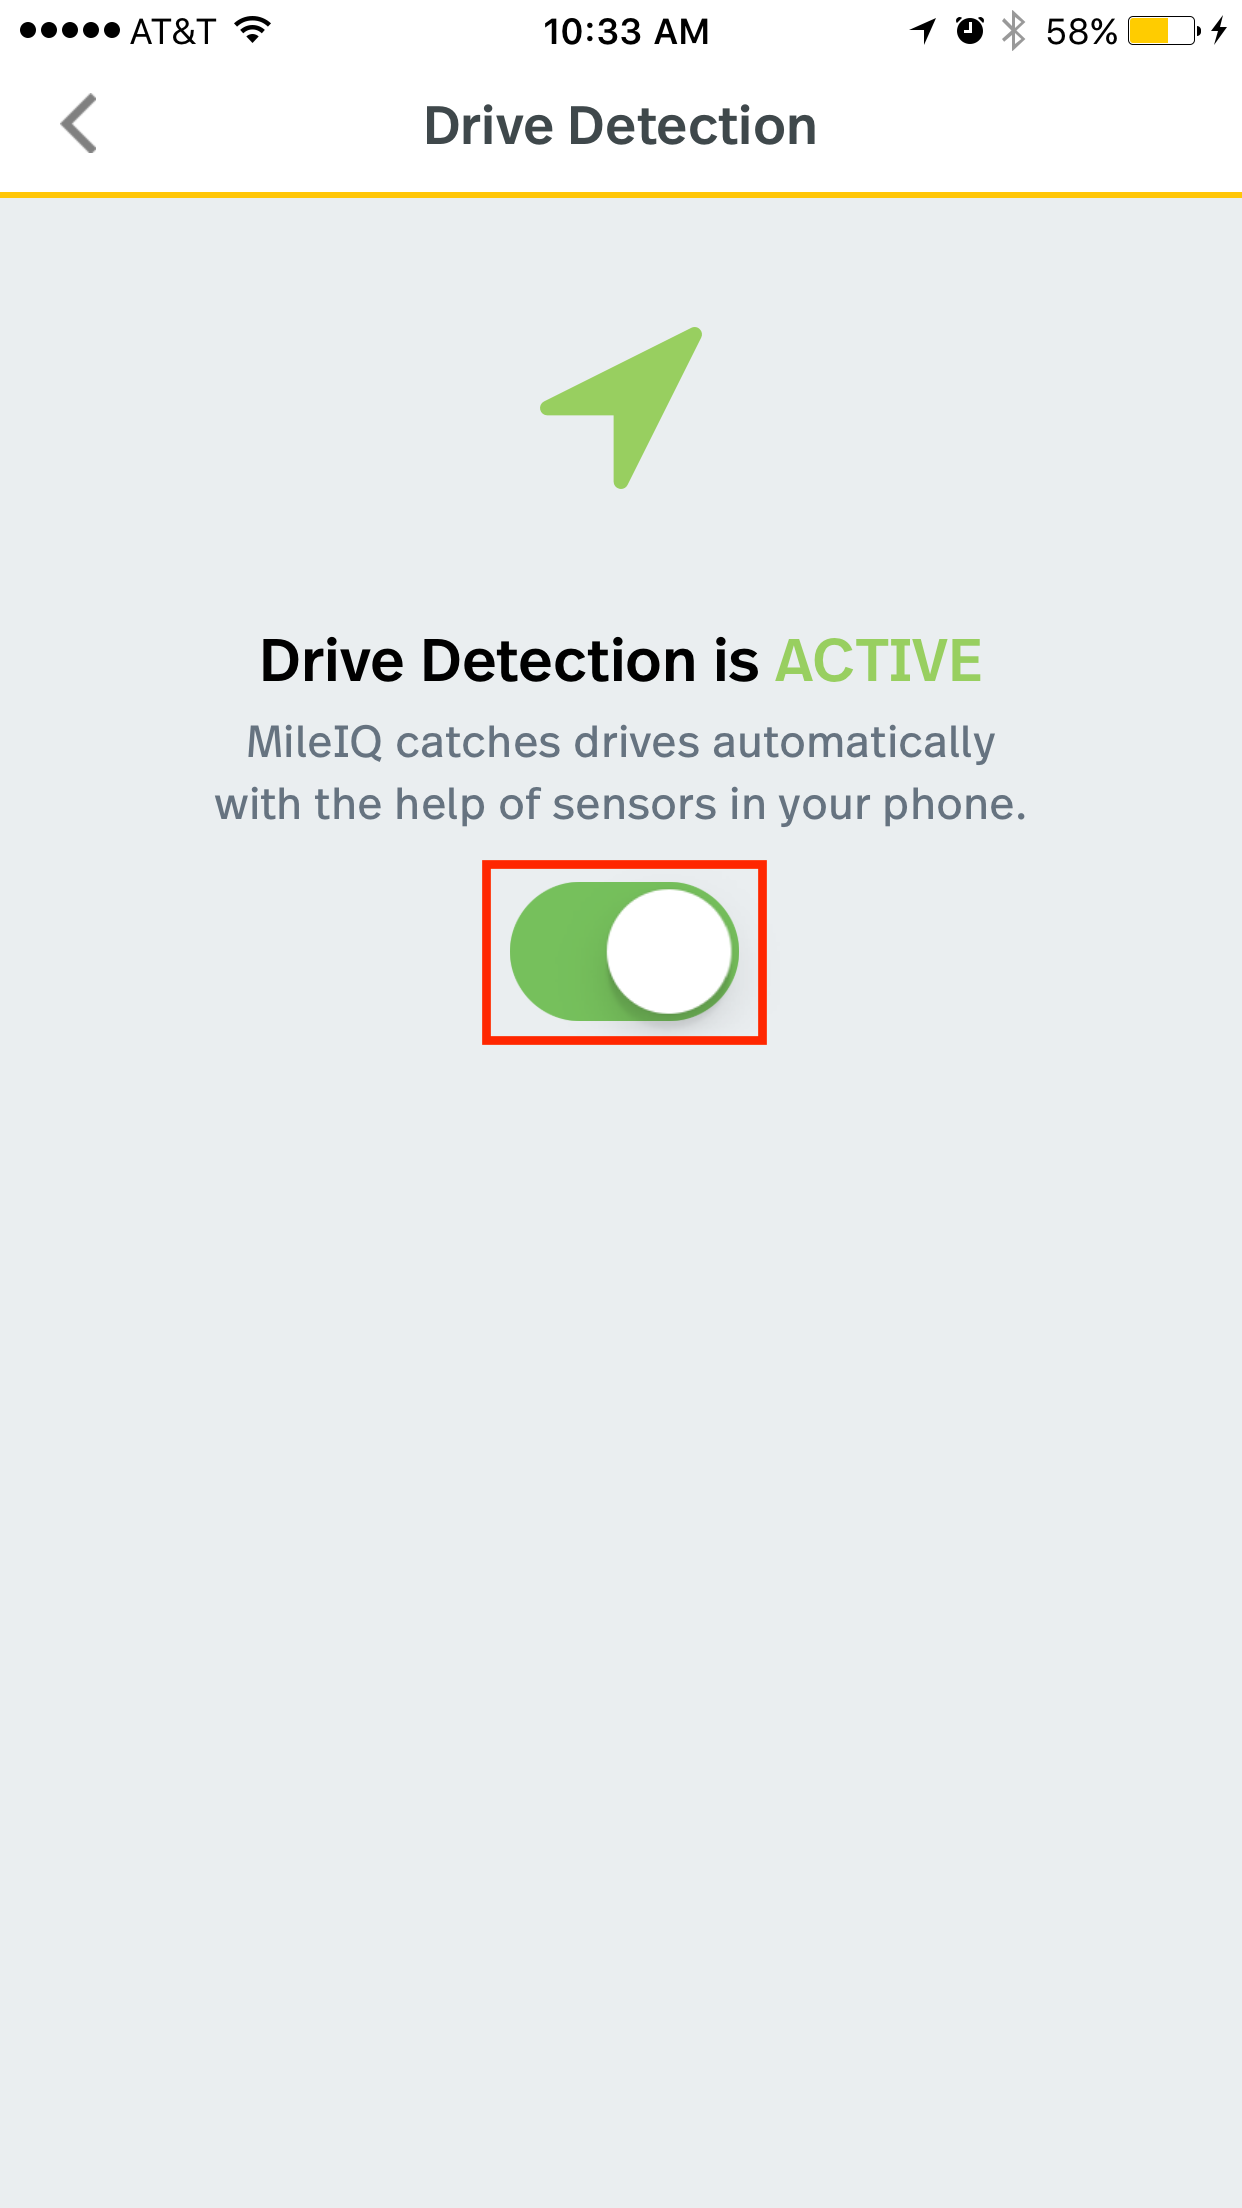 This image shows the drive detection page showing the drive detection toggle as green and active.